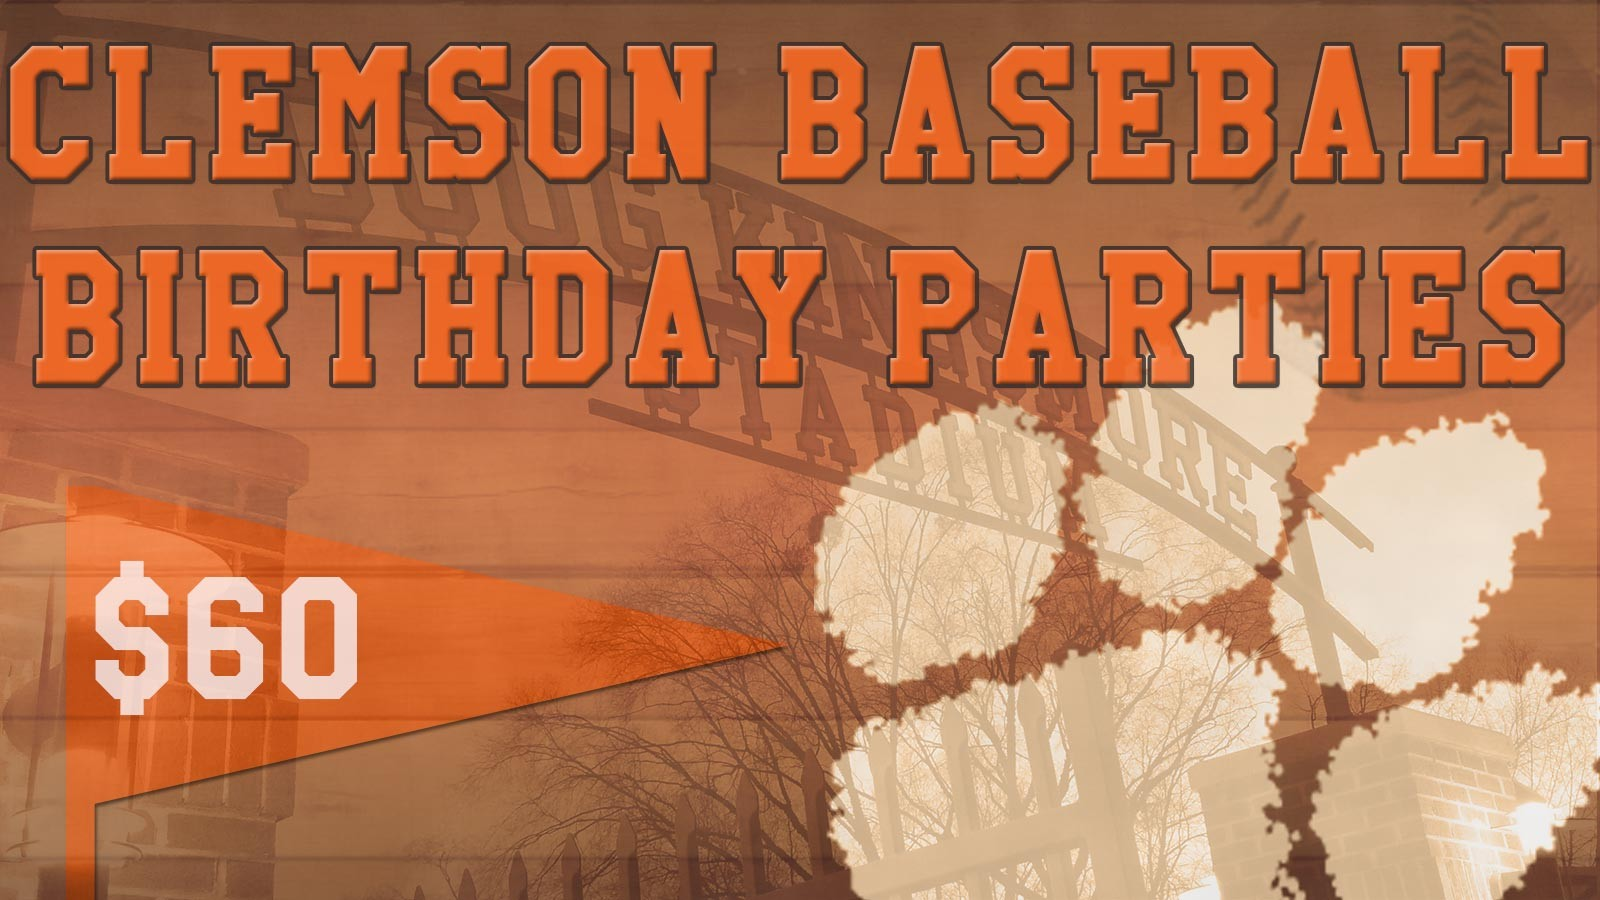 Celebrate Your Birthday with Clemson Baseball